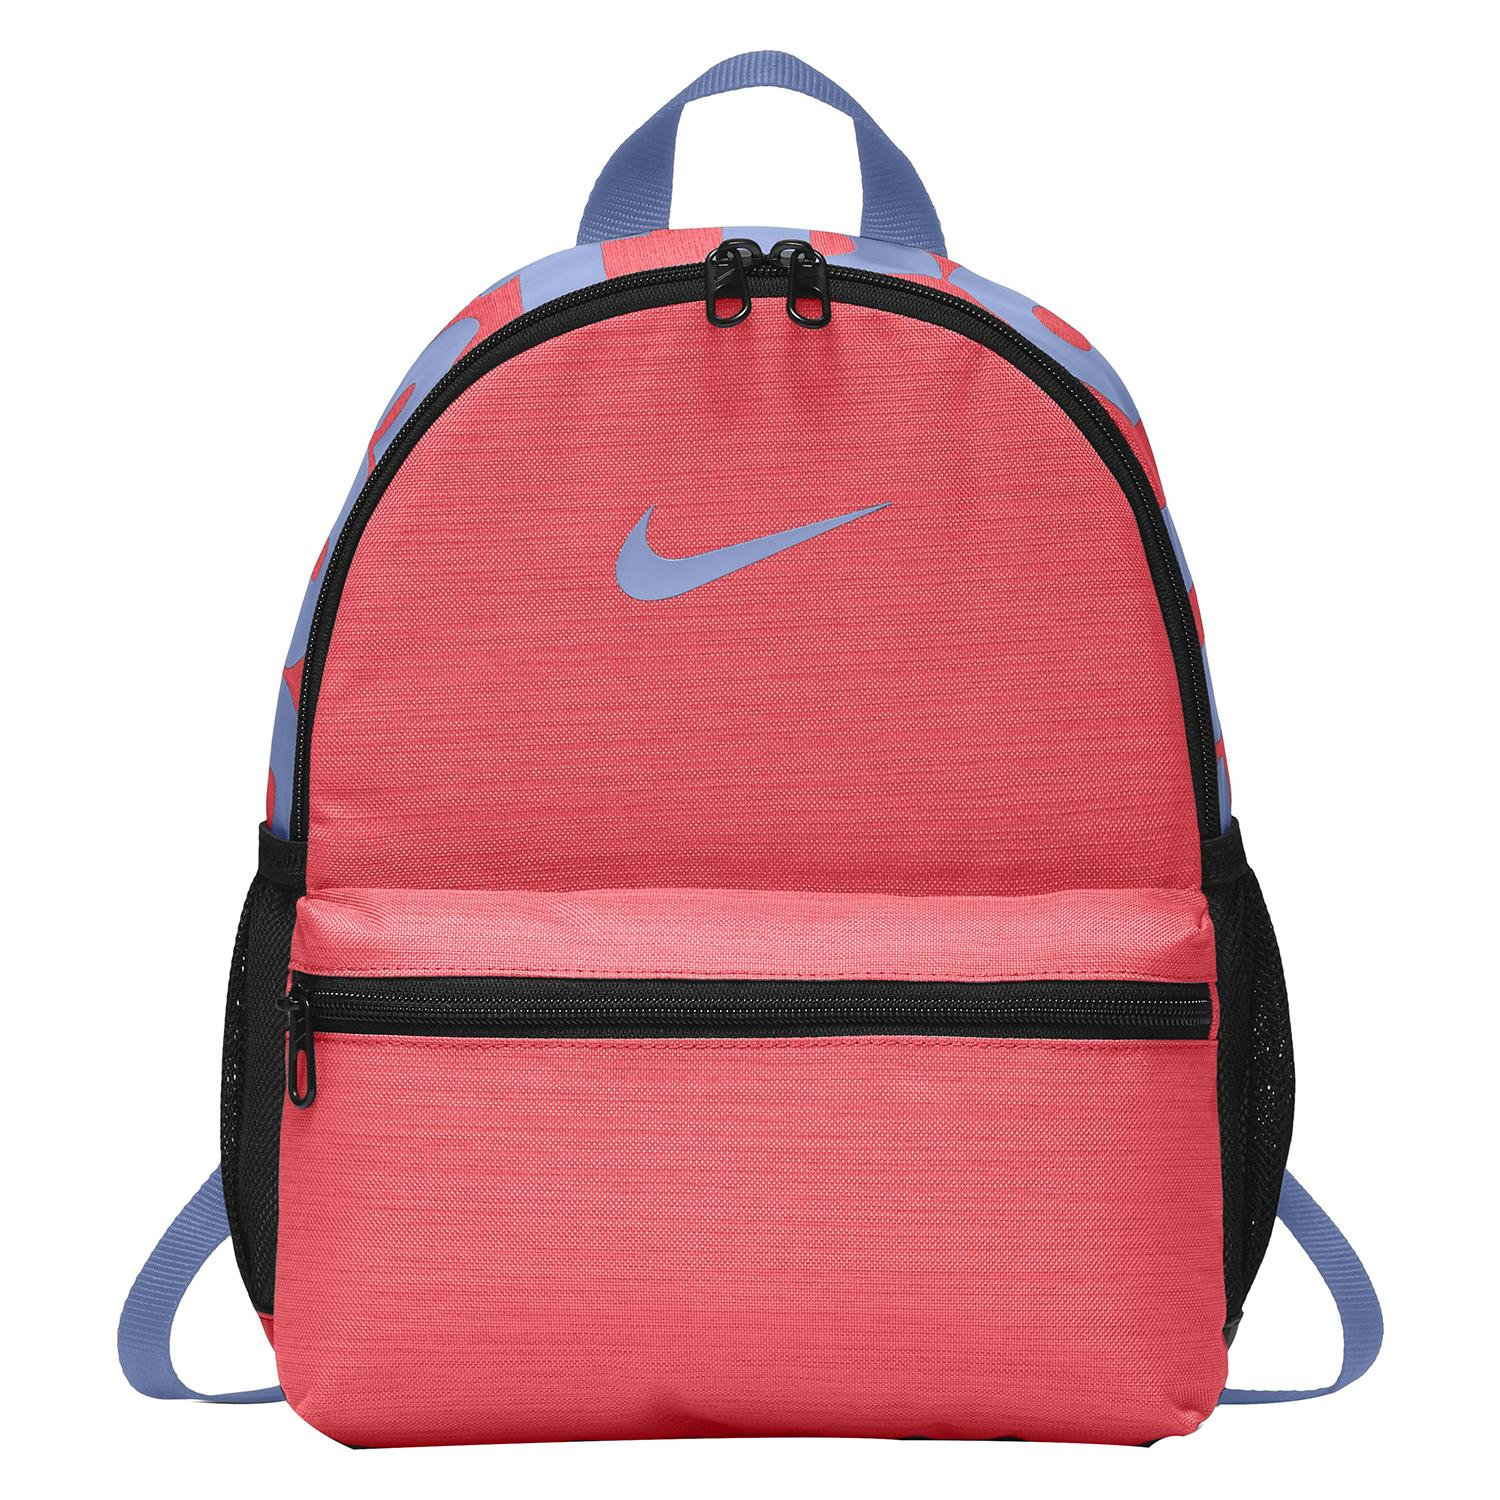 8138be3dc3c Nike Brasilia Just Do It Youth Mini Backpack in Orange - Intersport  Australia